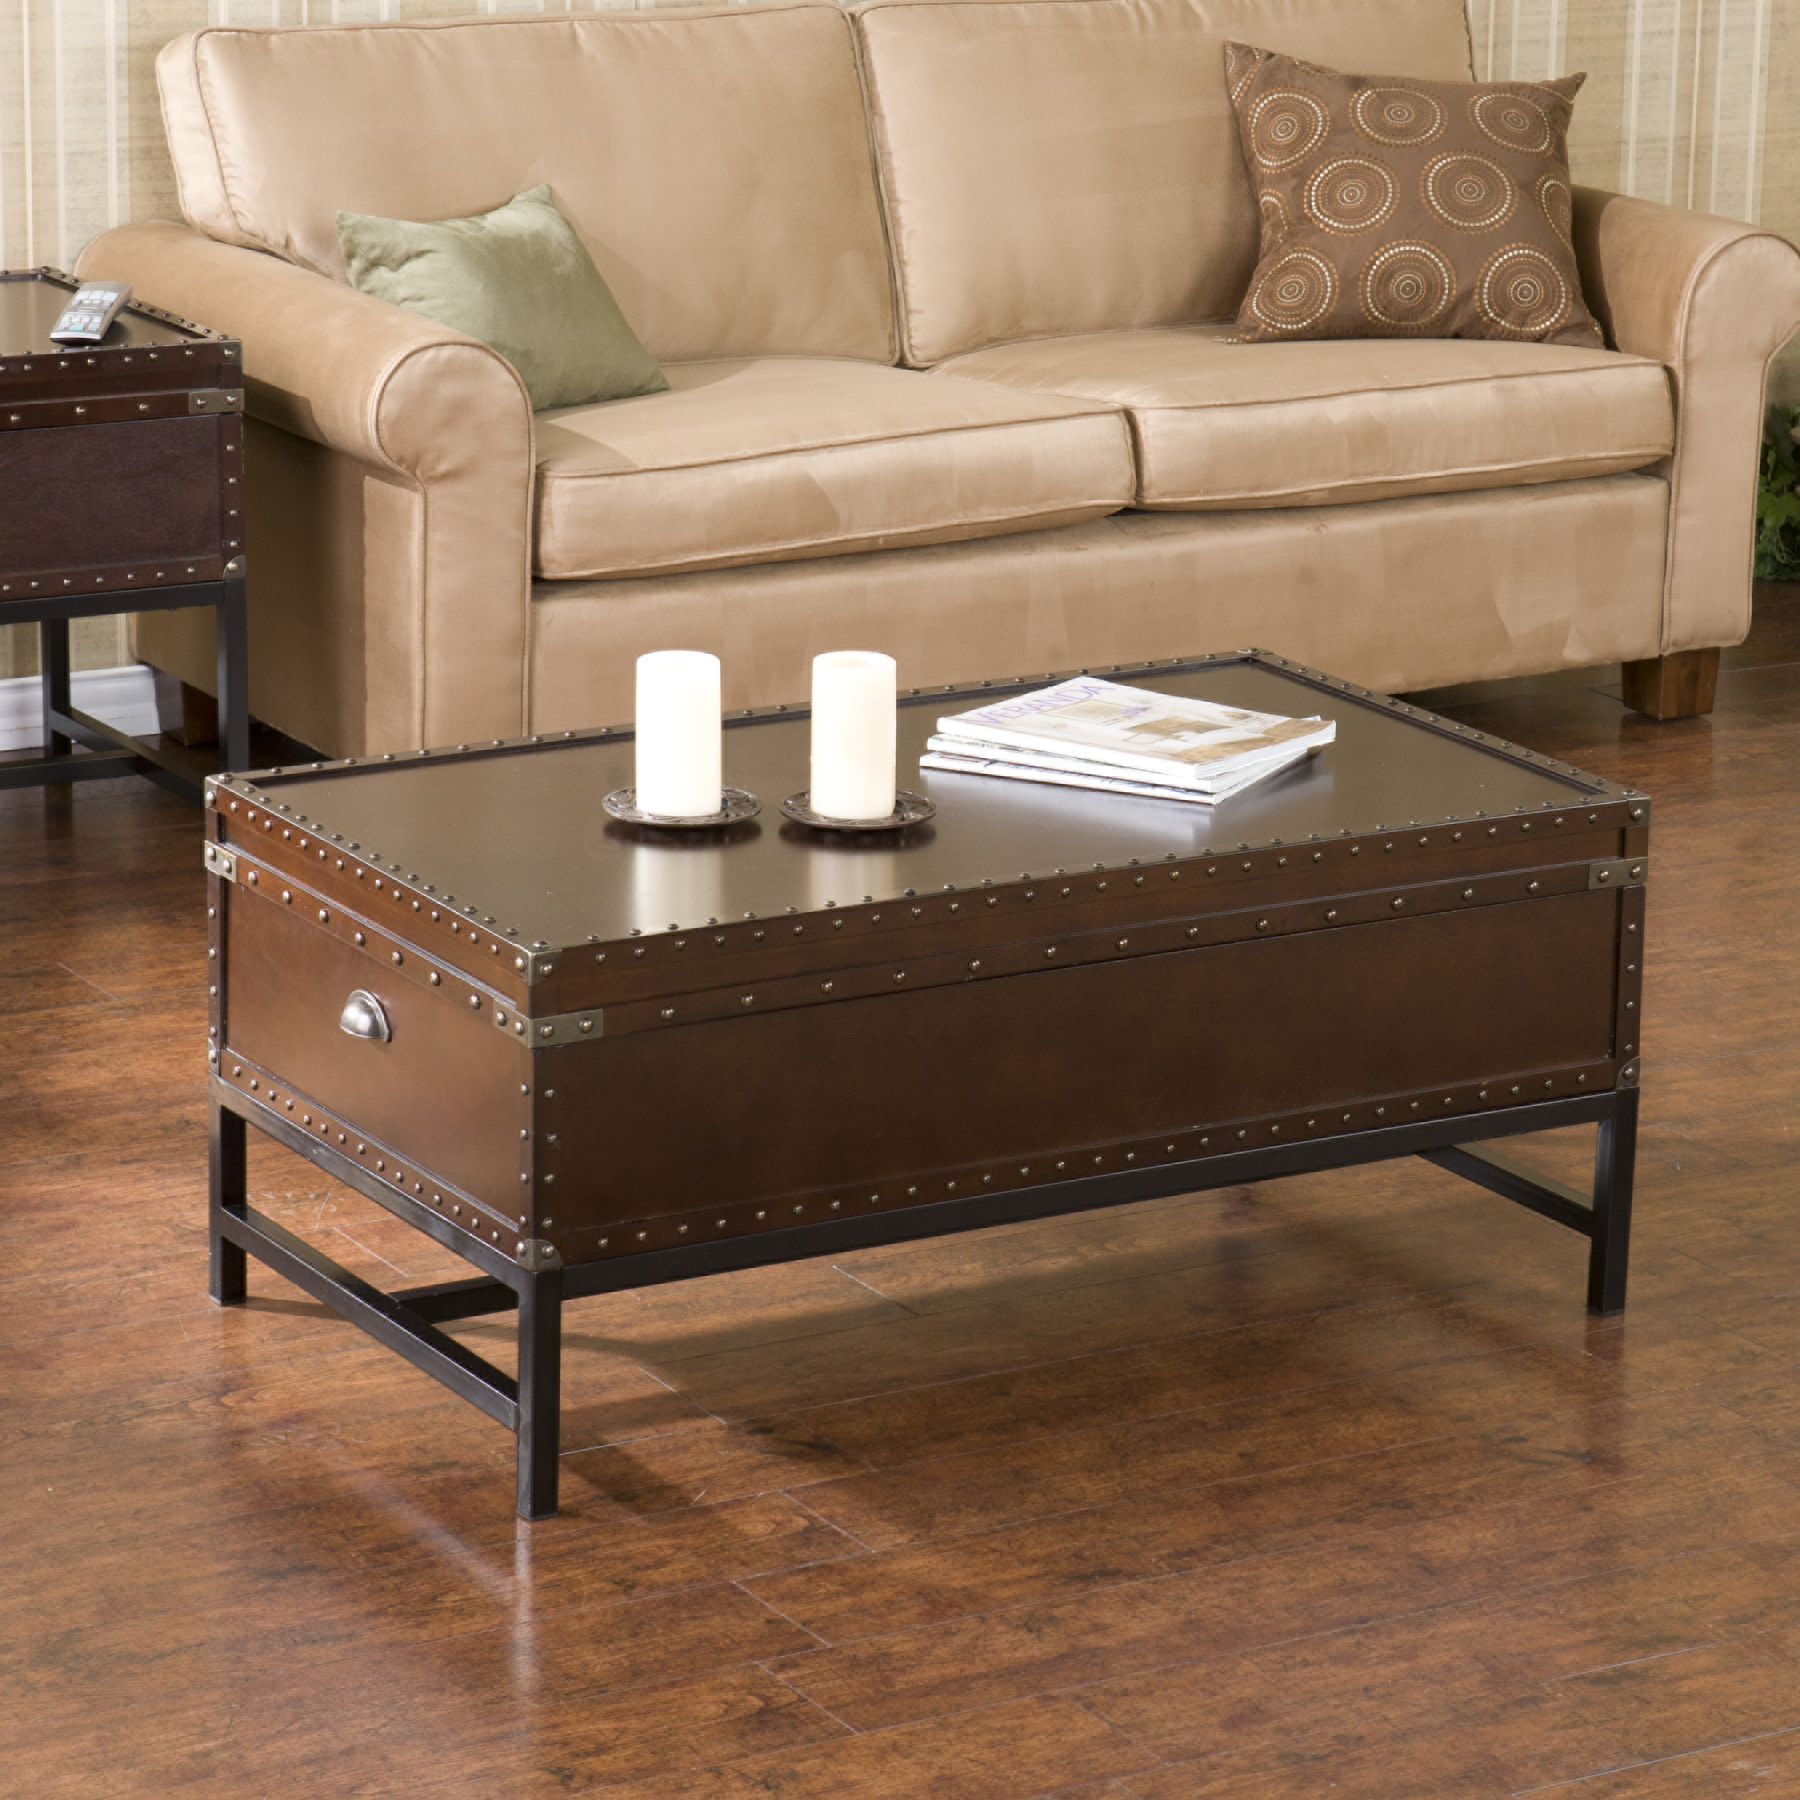 Southern enterprises marco storage coffee table espresso walmart com